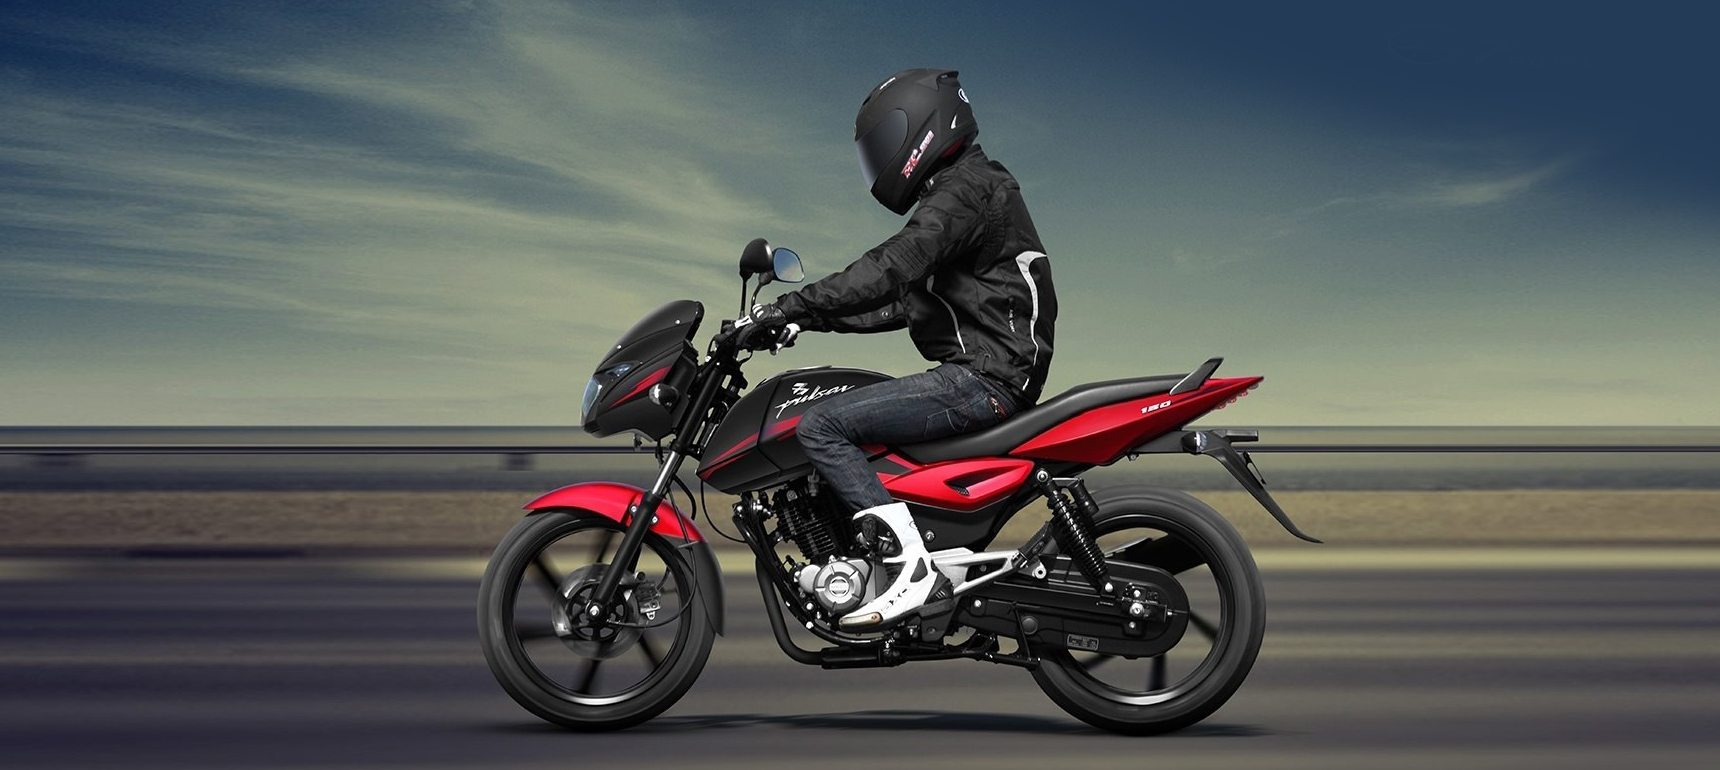 A biker is riding on a open road with black and red color Bajaj Pulsar 150 Twin Disk Motorcycle wearing black leather jacket and helmet